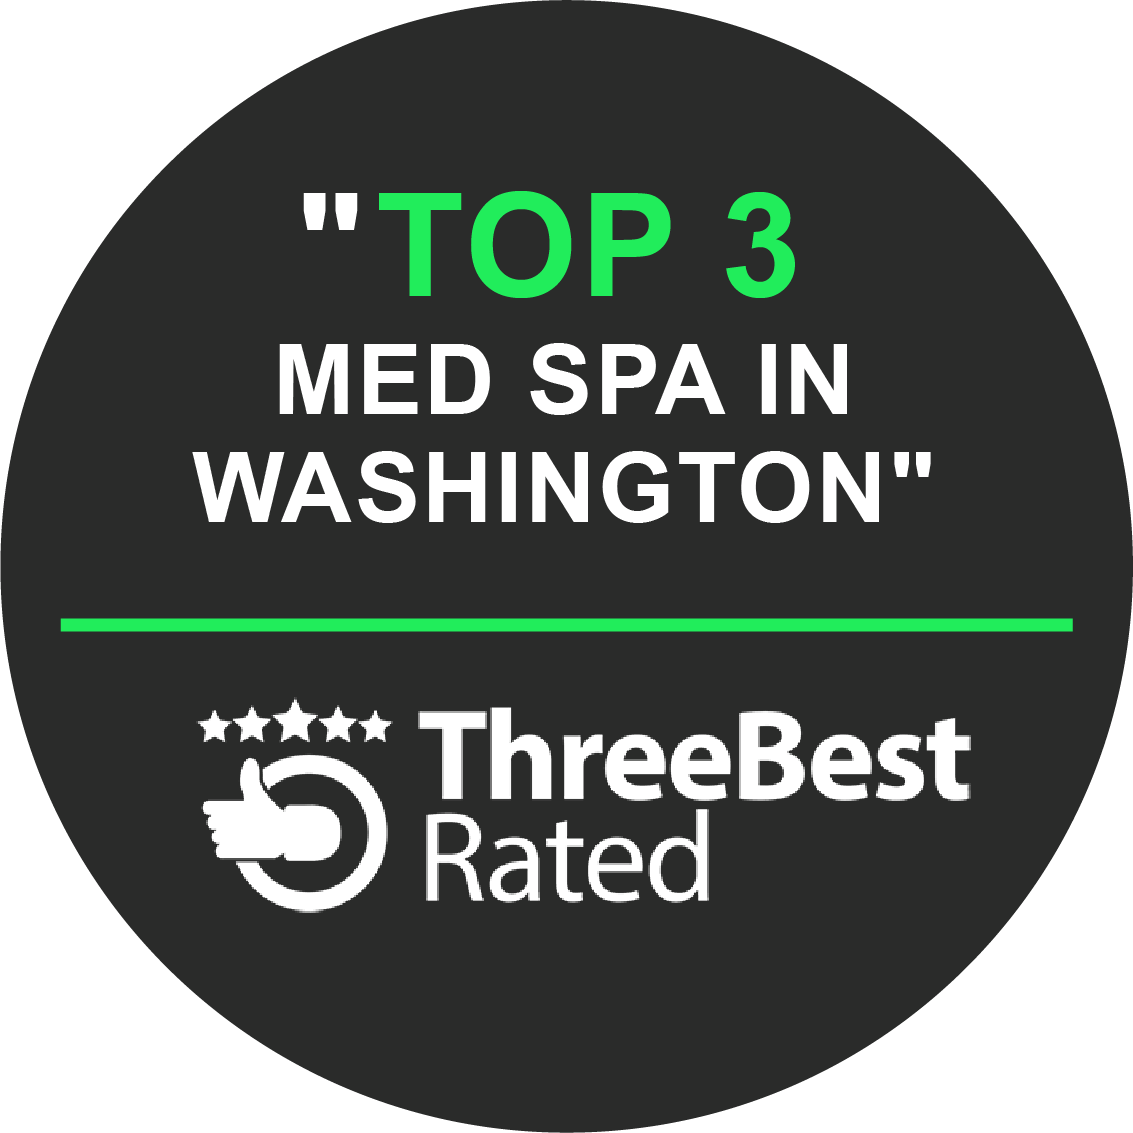 """Top 3 Med Spa in Washington"" by ThreeBest Rated"